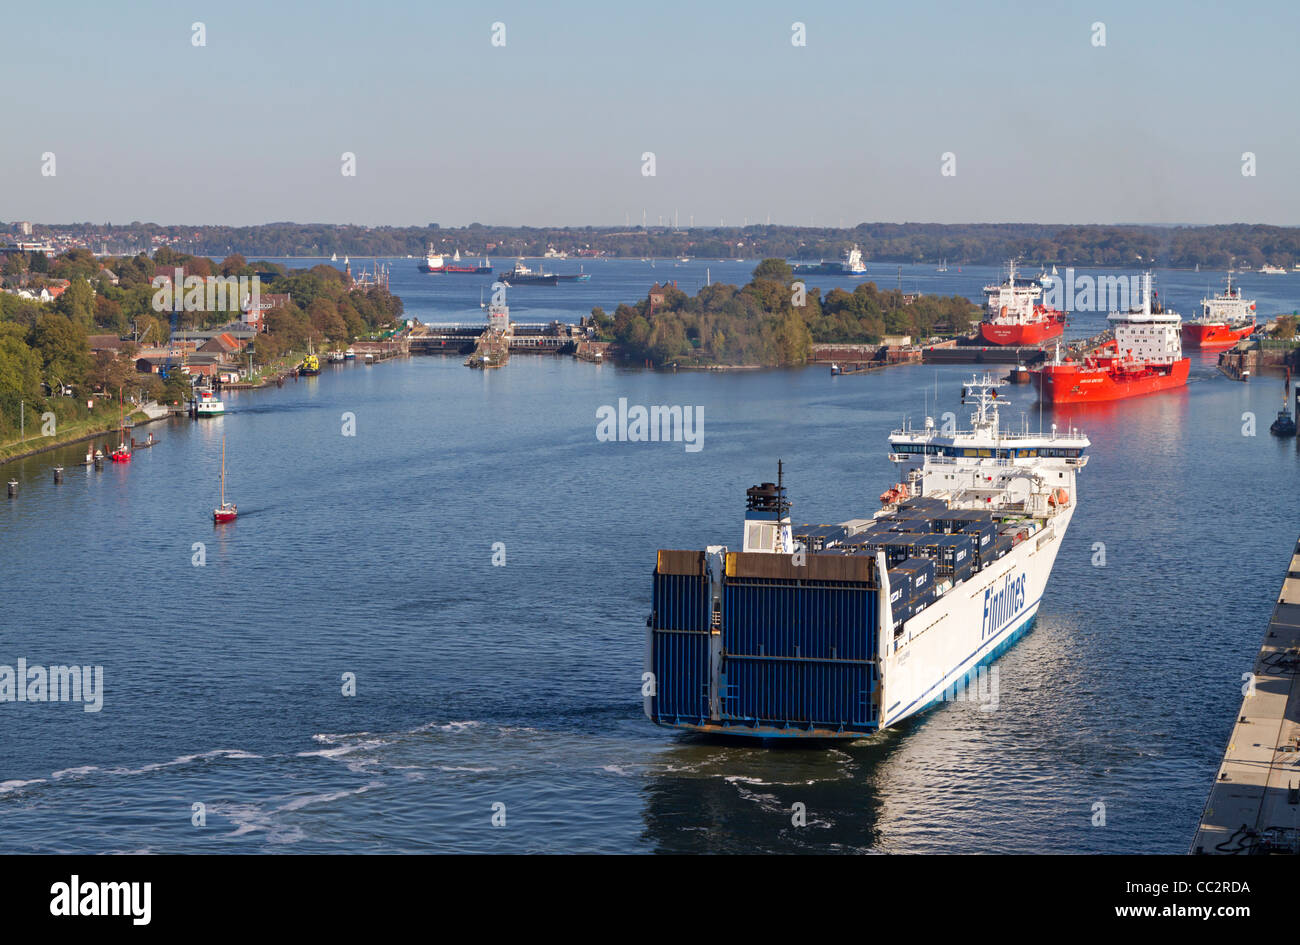 Ships at lock Holtenau, North East Canal, Kiel, Germany - Stock Image